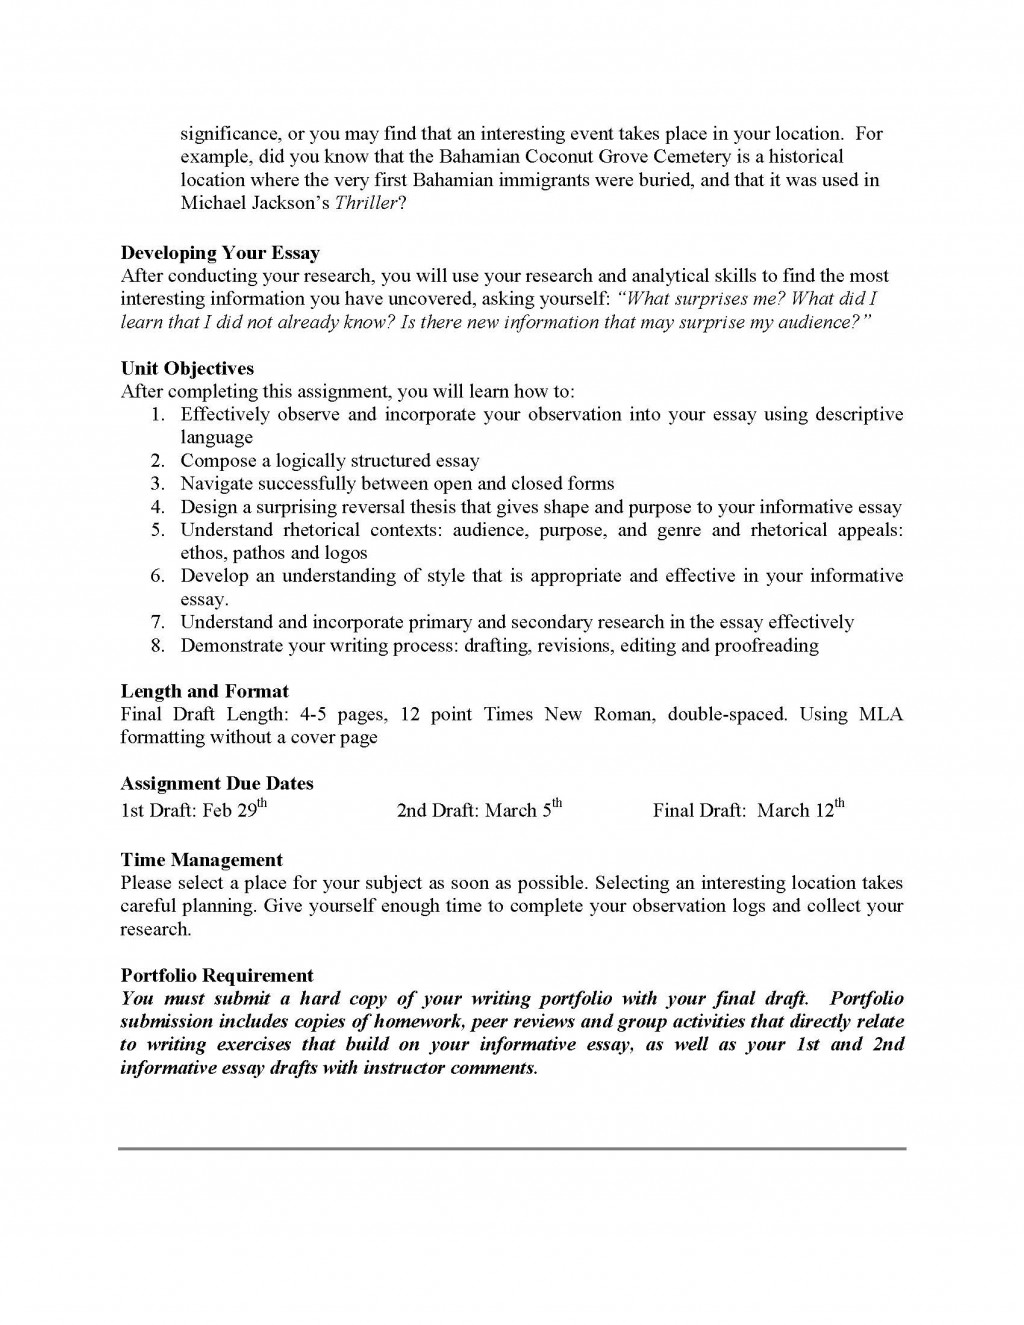 011 Informative Essay Unit Assignment Page 2 Example Outstanding Definition Large